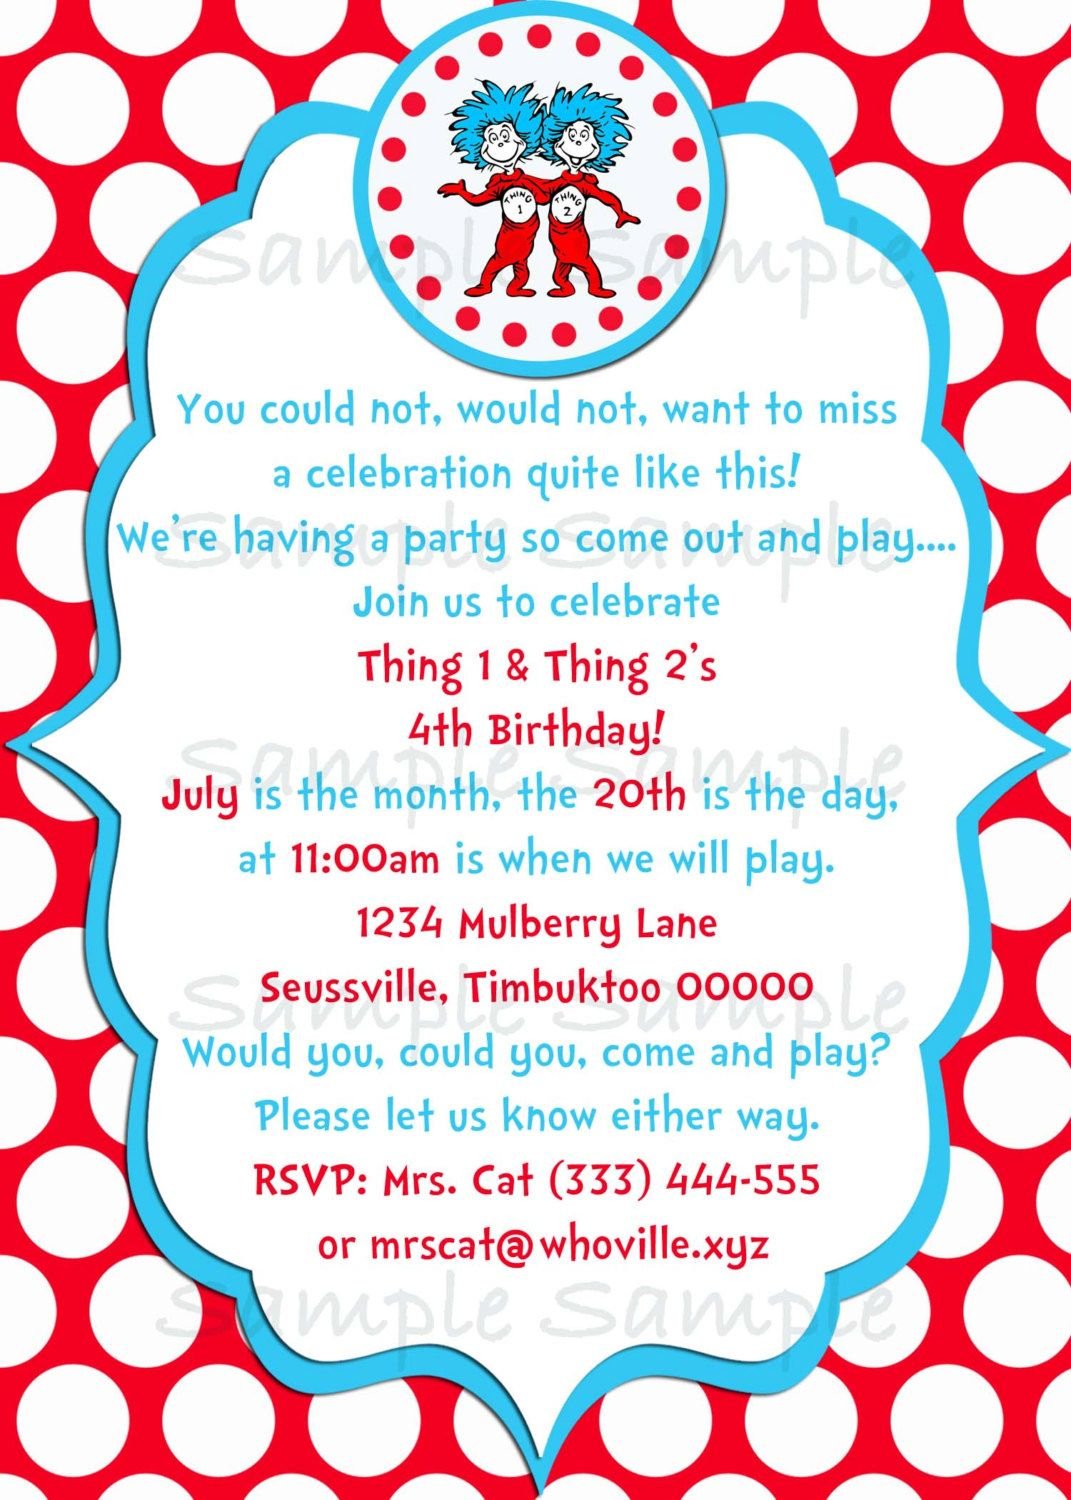 seuss thing 1 thing 2 birthday party